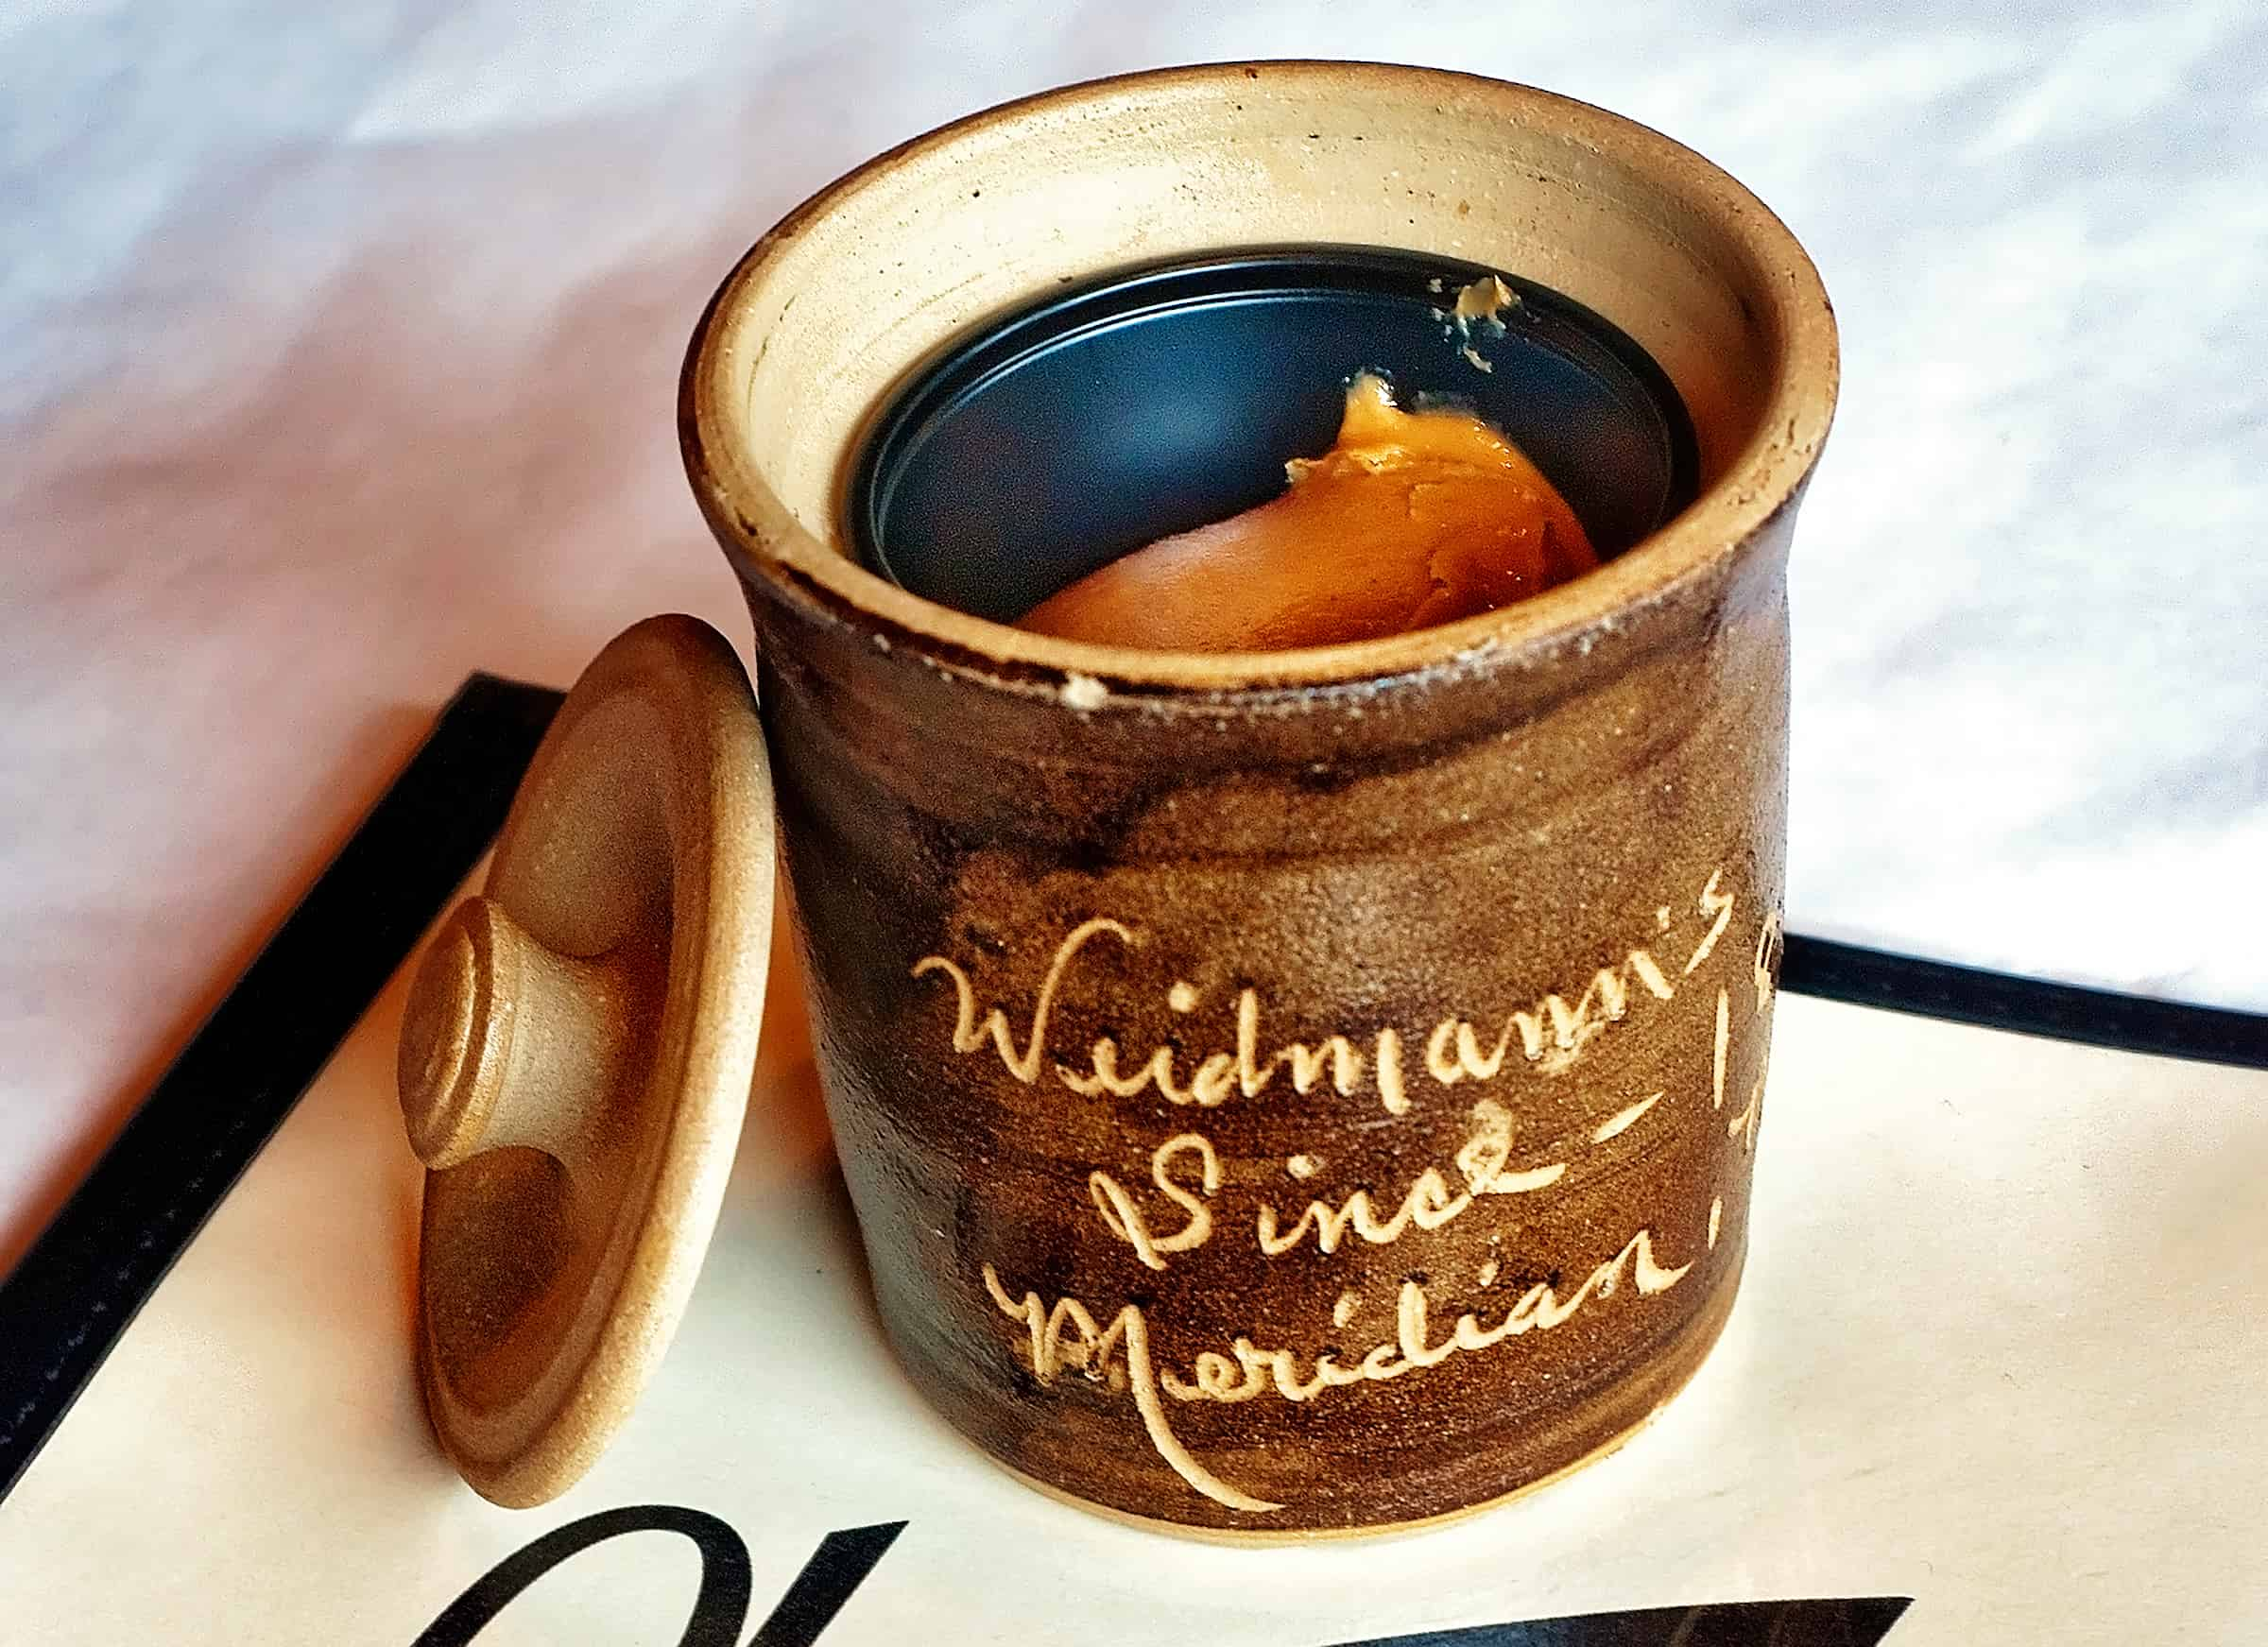 Peanut butter crock at Weidmann's restaurant in Meridian, Mississippi